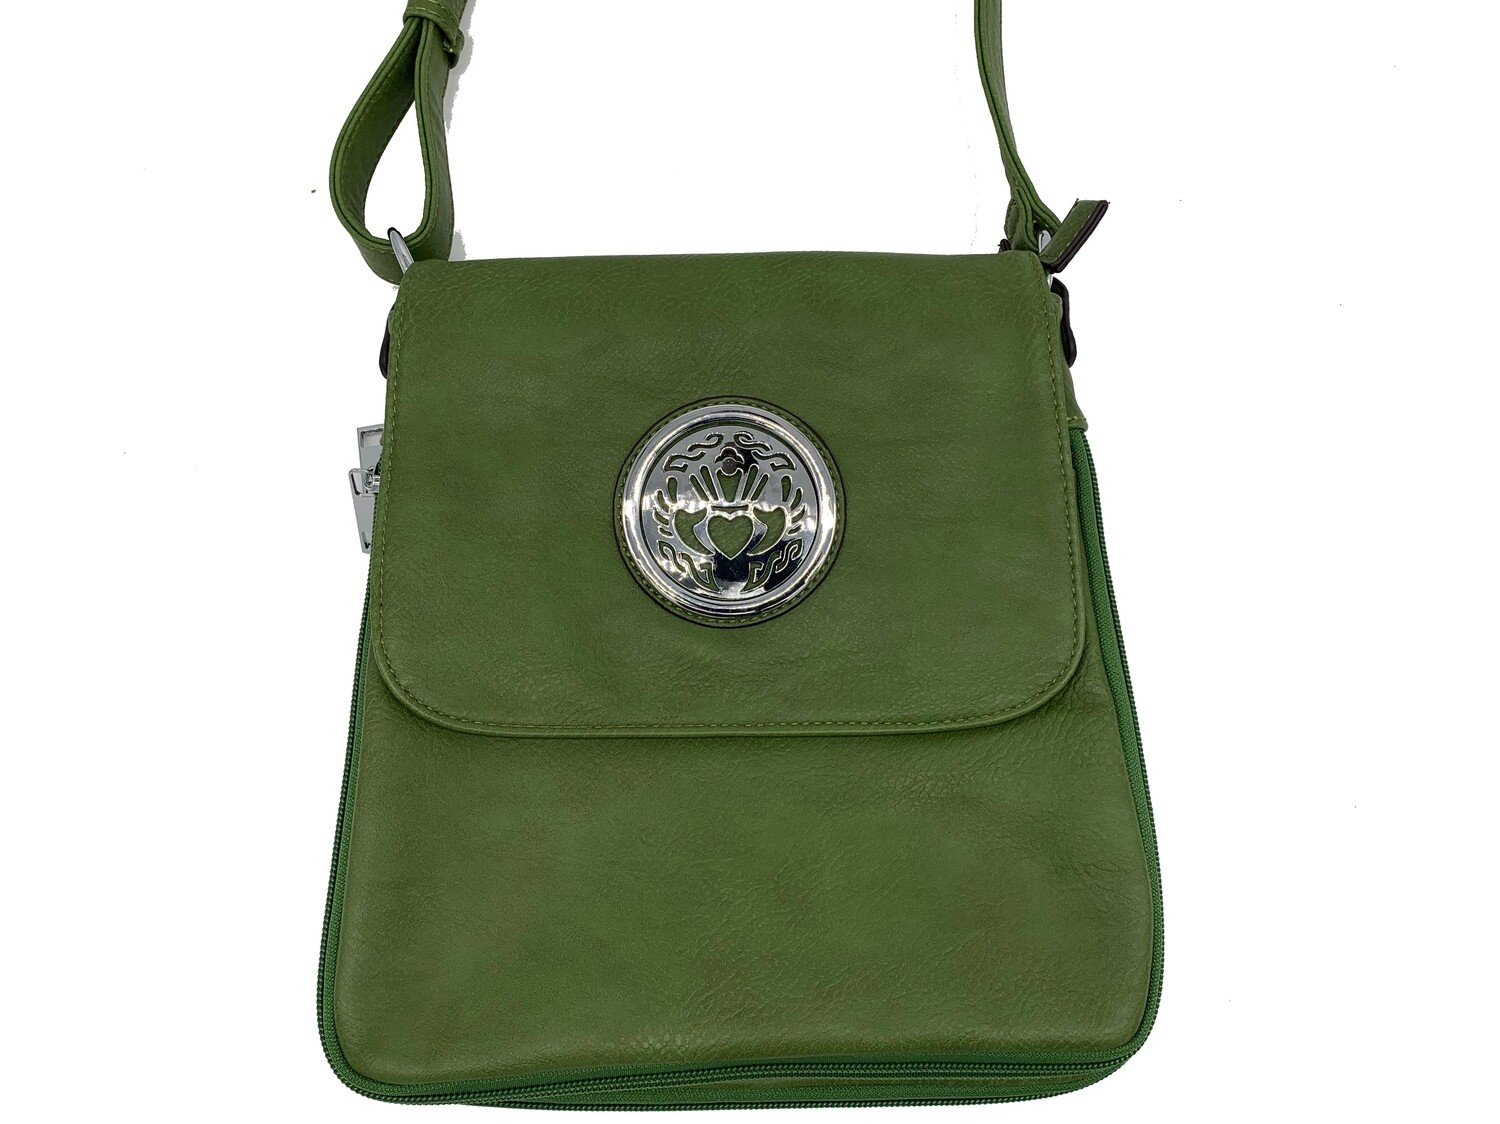 503 Expandale Zip Around Bag  olive green